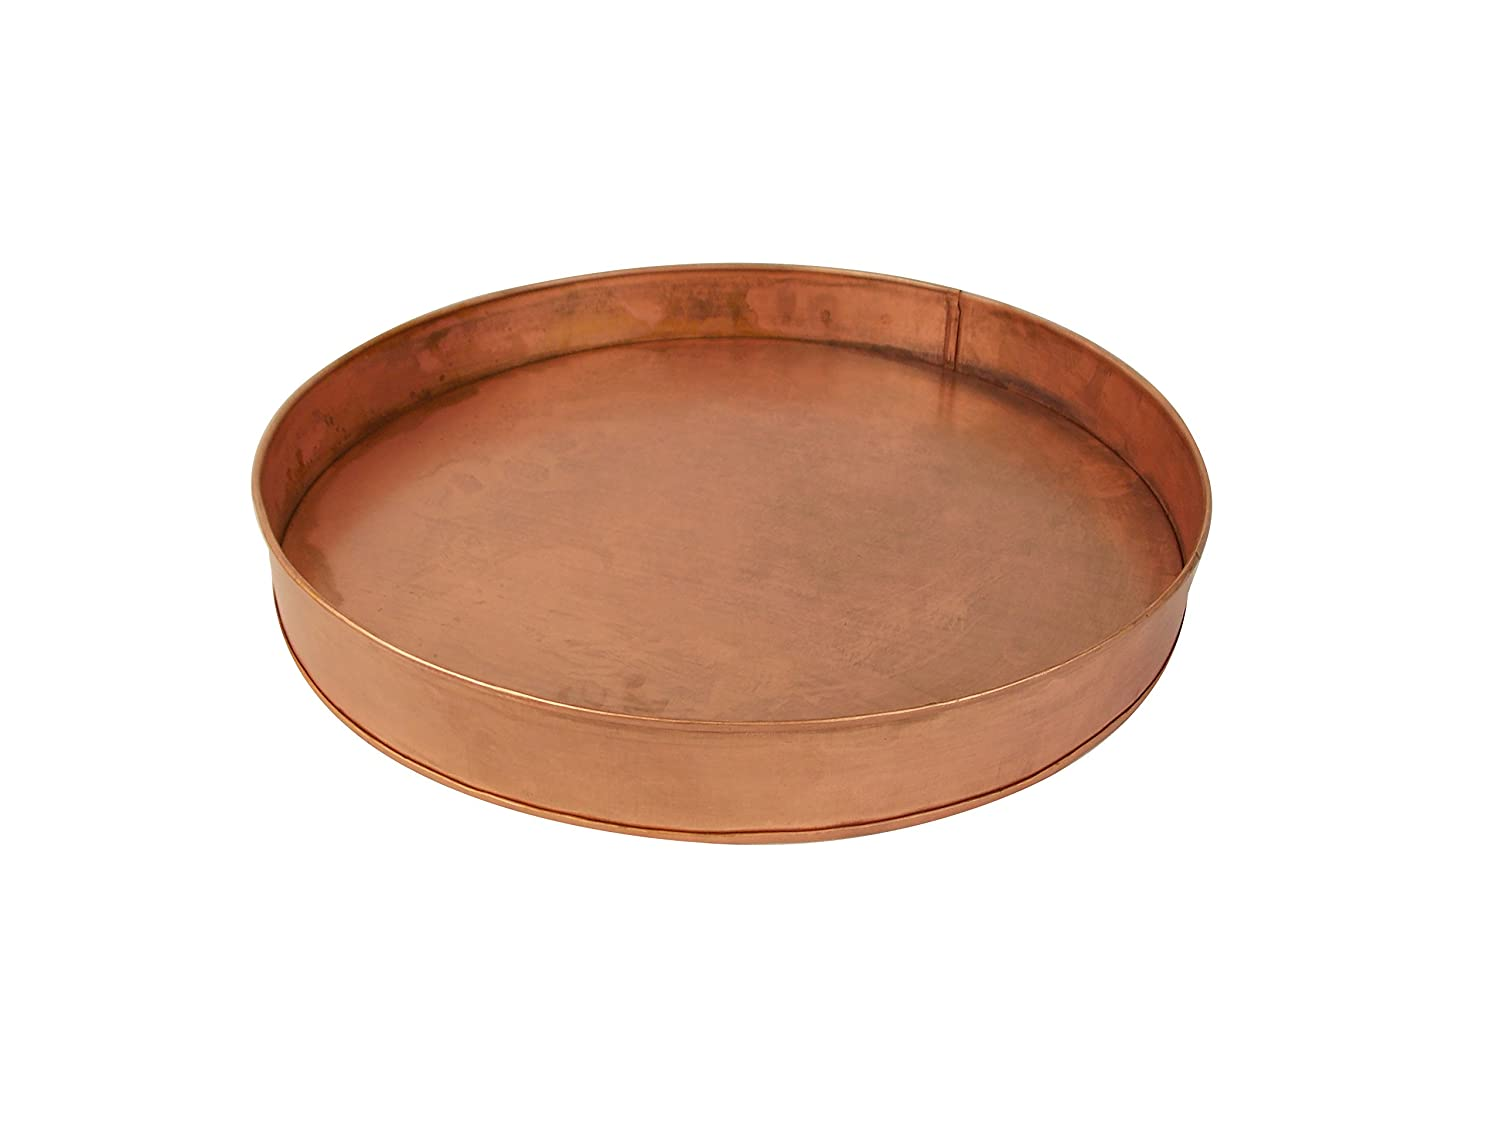 Craft Outlet Copper Round Tray, 12 x 12 x 1.5 Craft Outlet Inc T1380